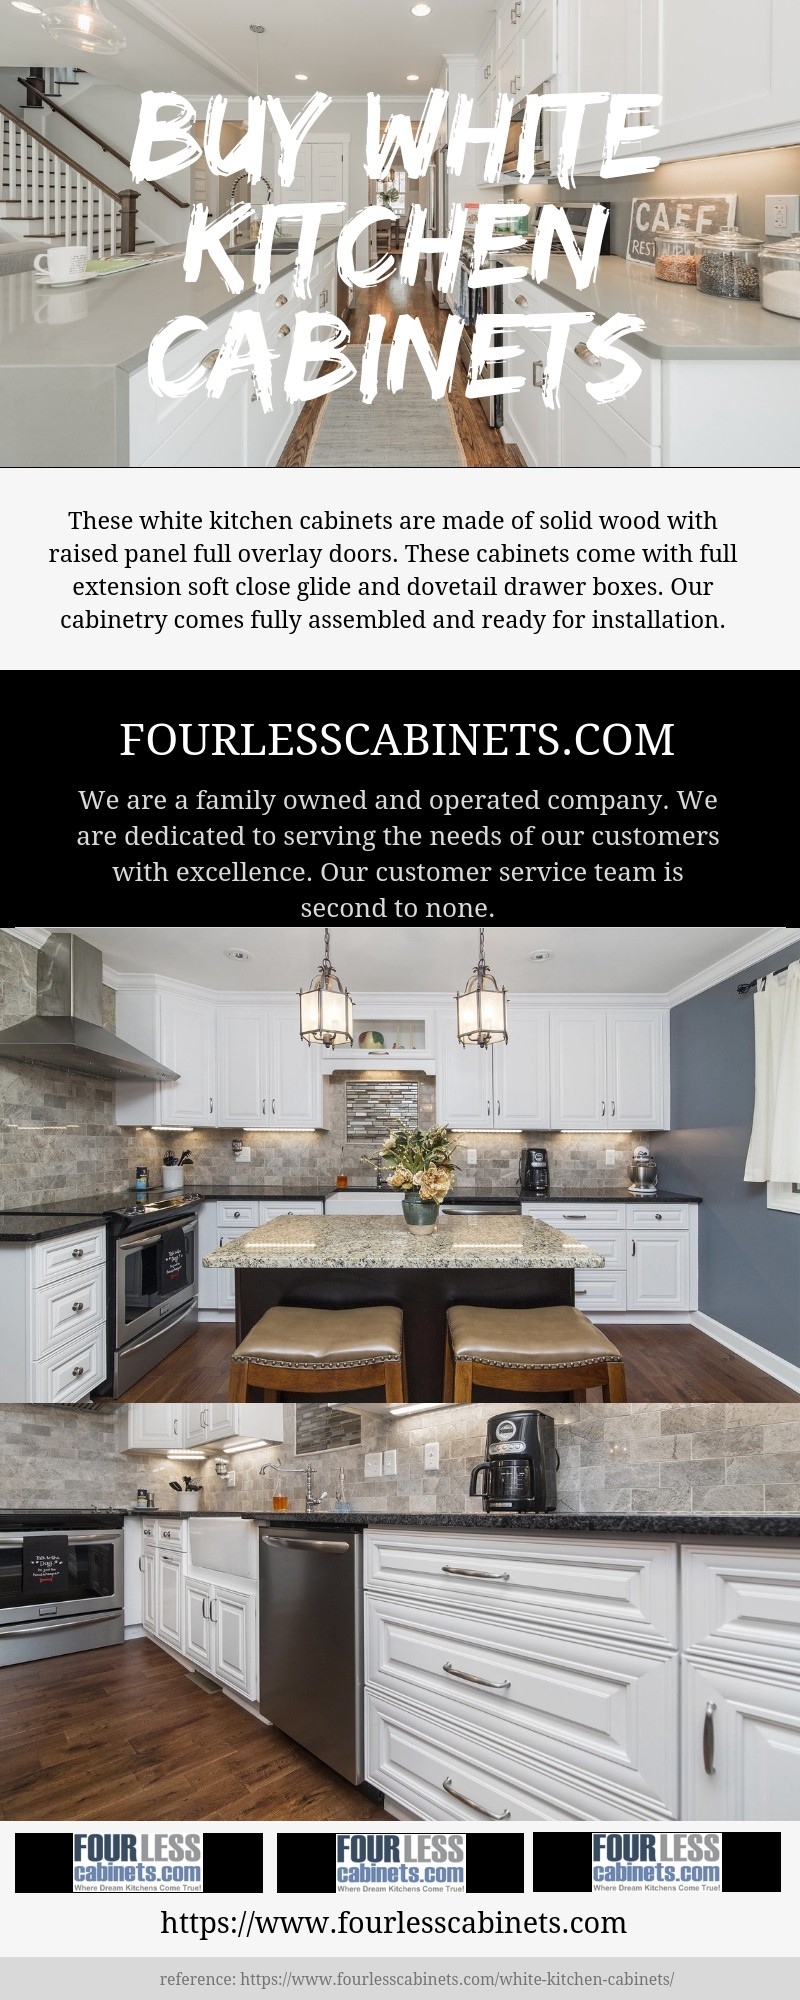 Buy White Kitchen Cabinets Four Less Cabinets Four Less